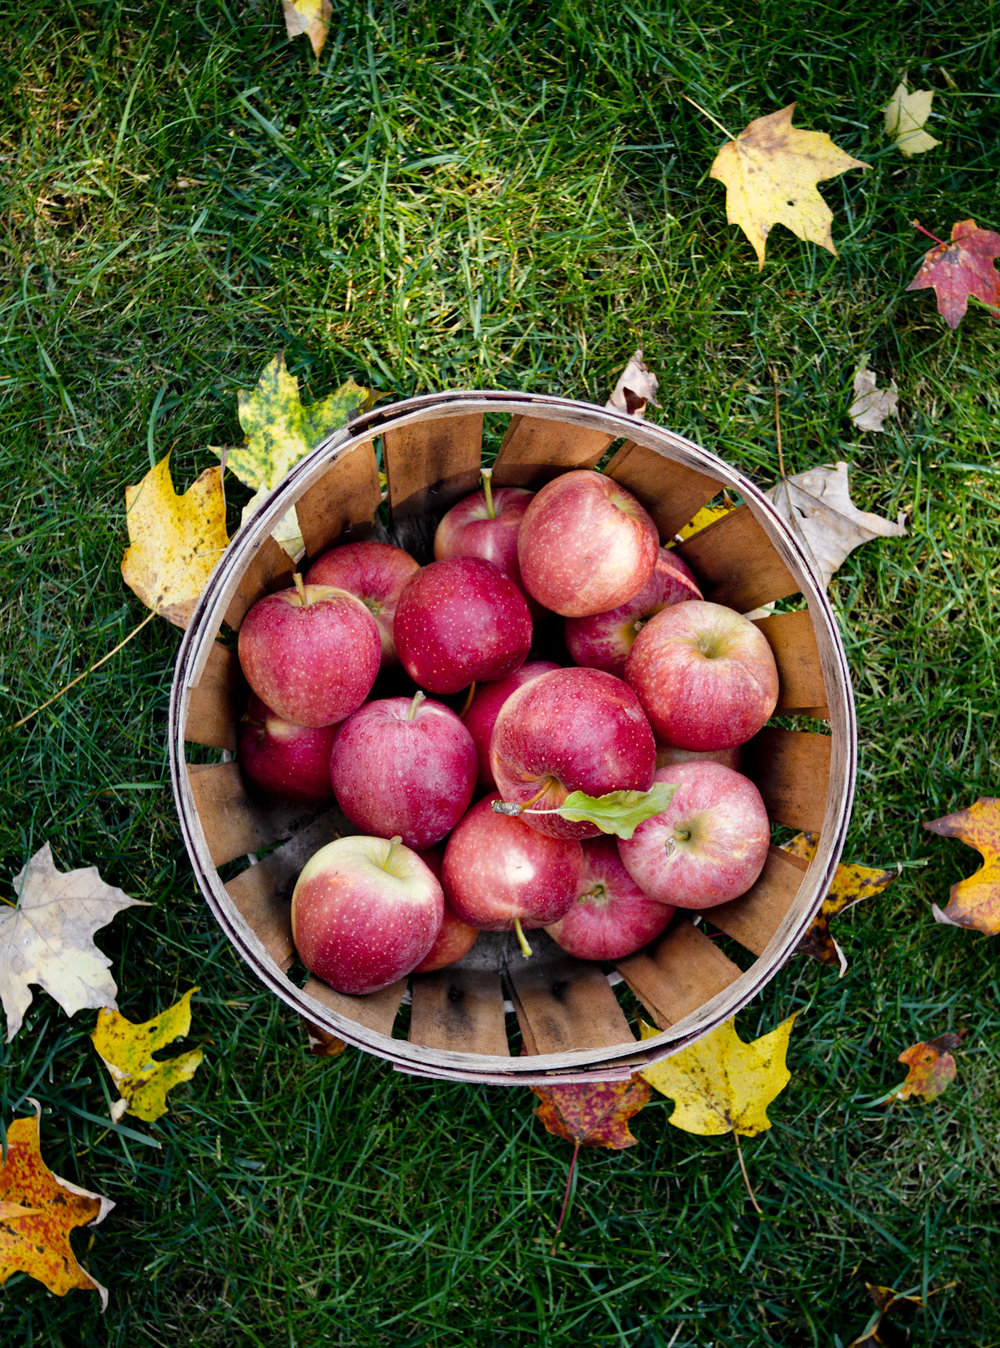 apple-picking-autumn-wood-basket-foliage.jpg